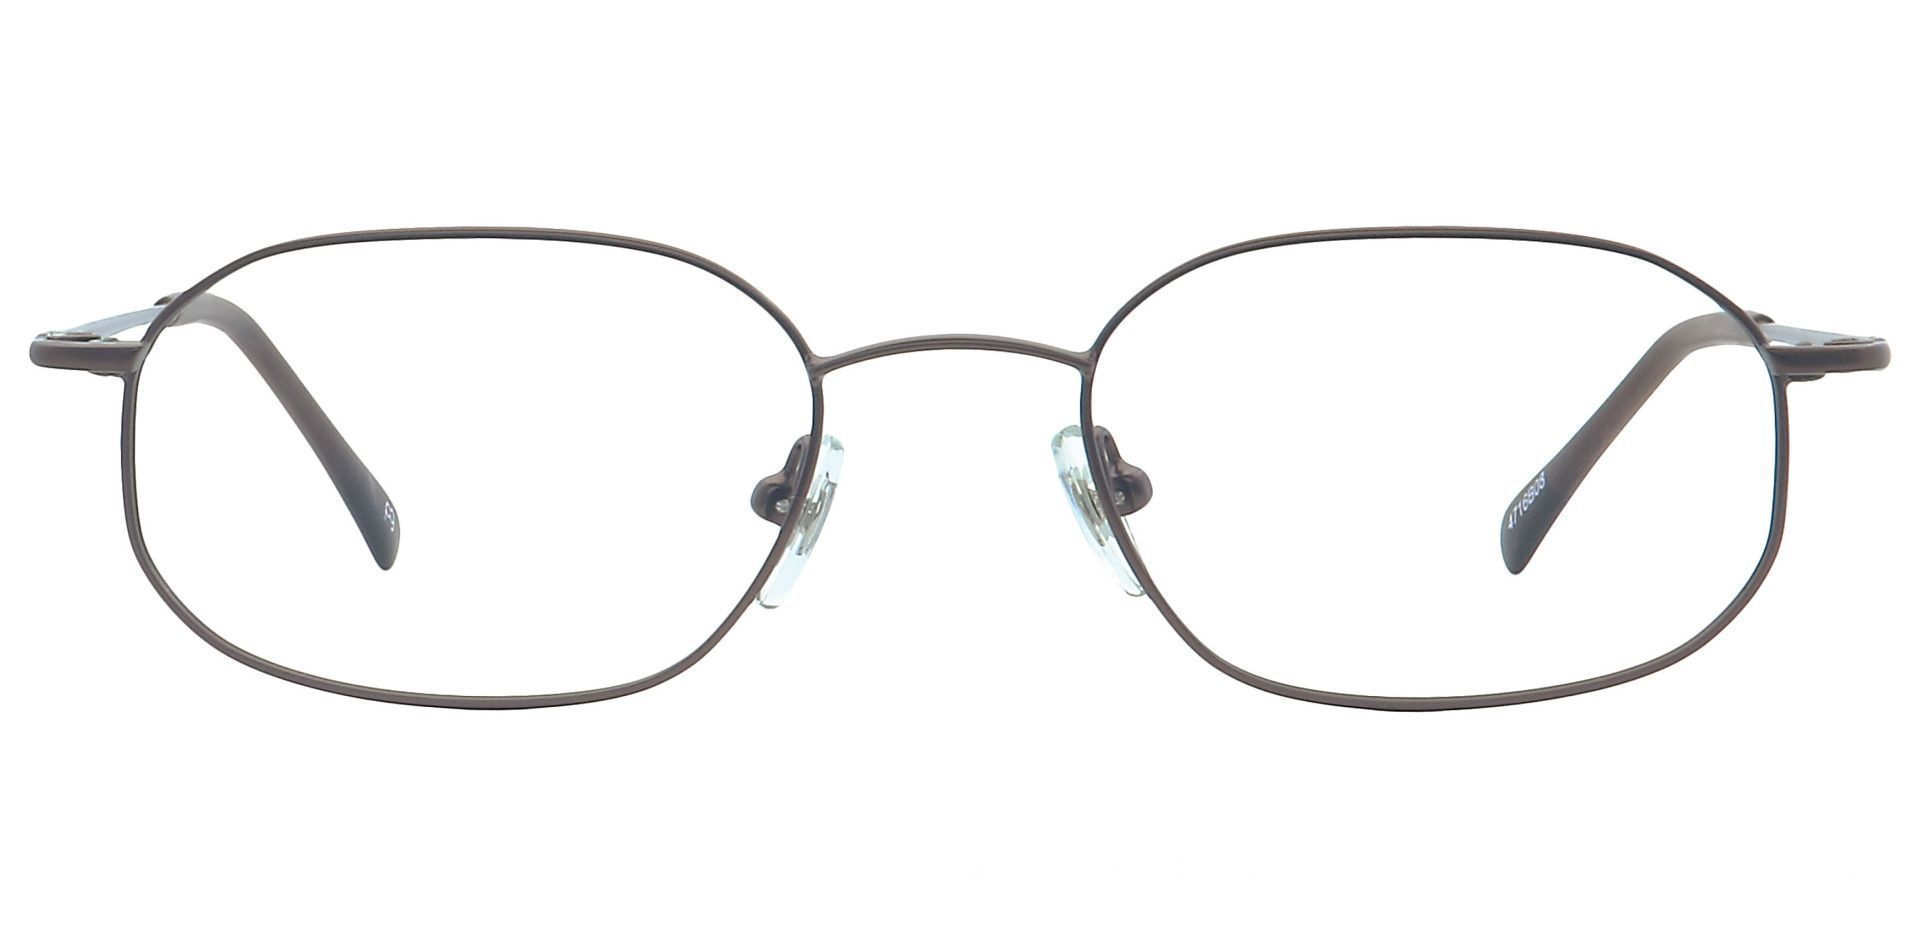 Parker Oval Blue Light Blocking Glasses - Brown